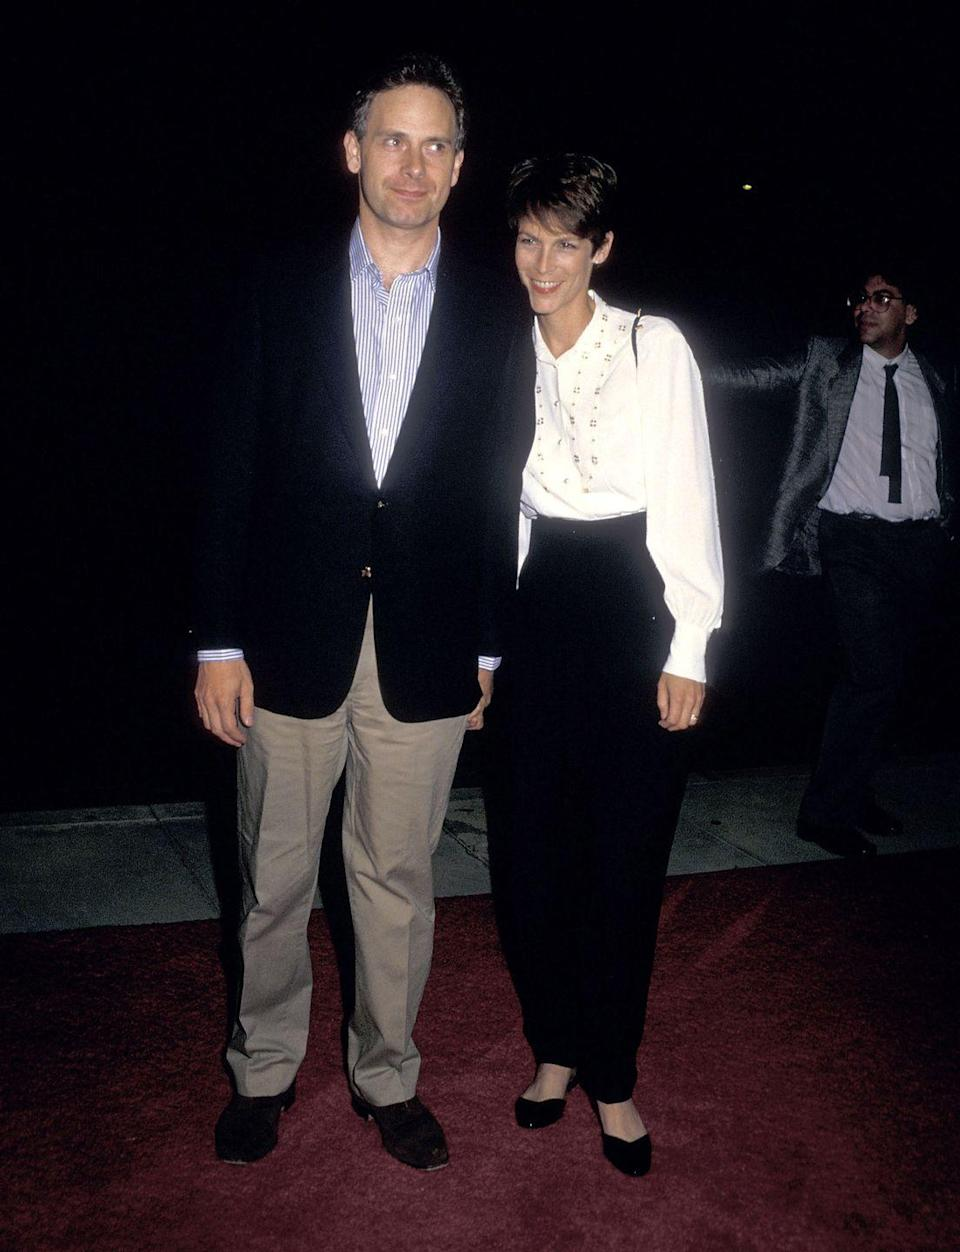 <p>The comfort shoe was a fixture on the red carpet, as seen here on Jamie Lee Curtis.</p>